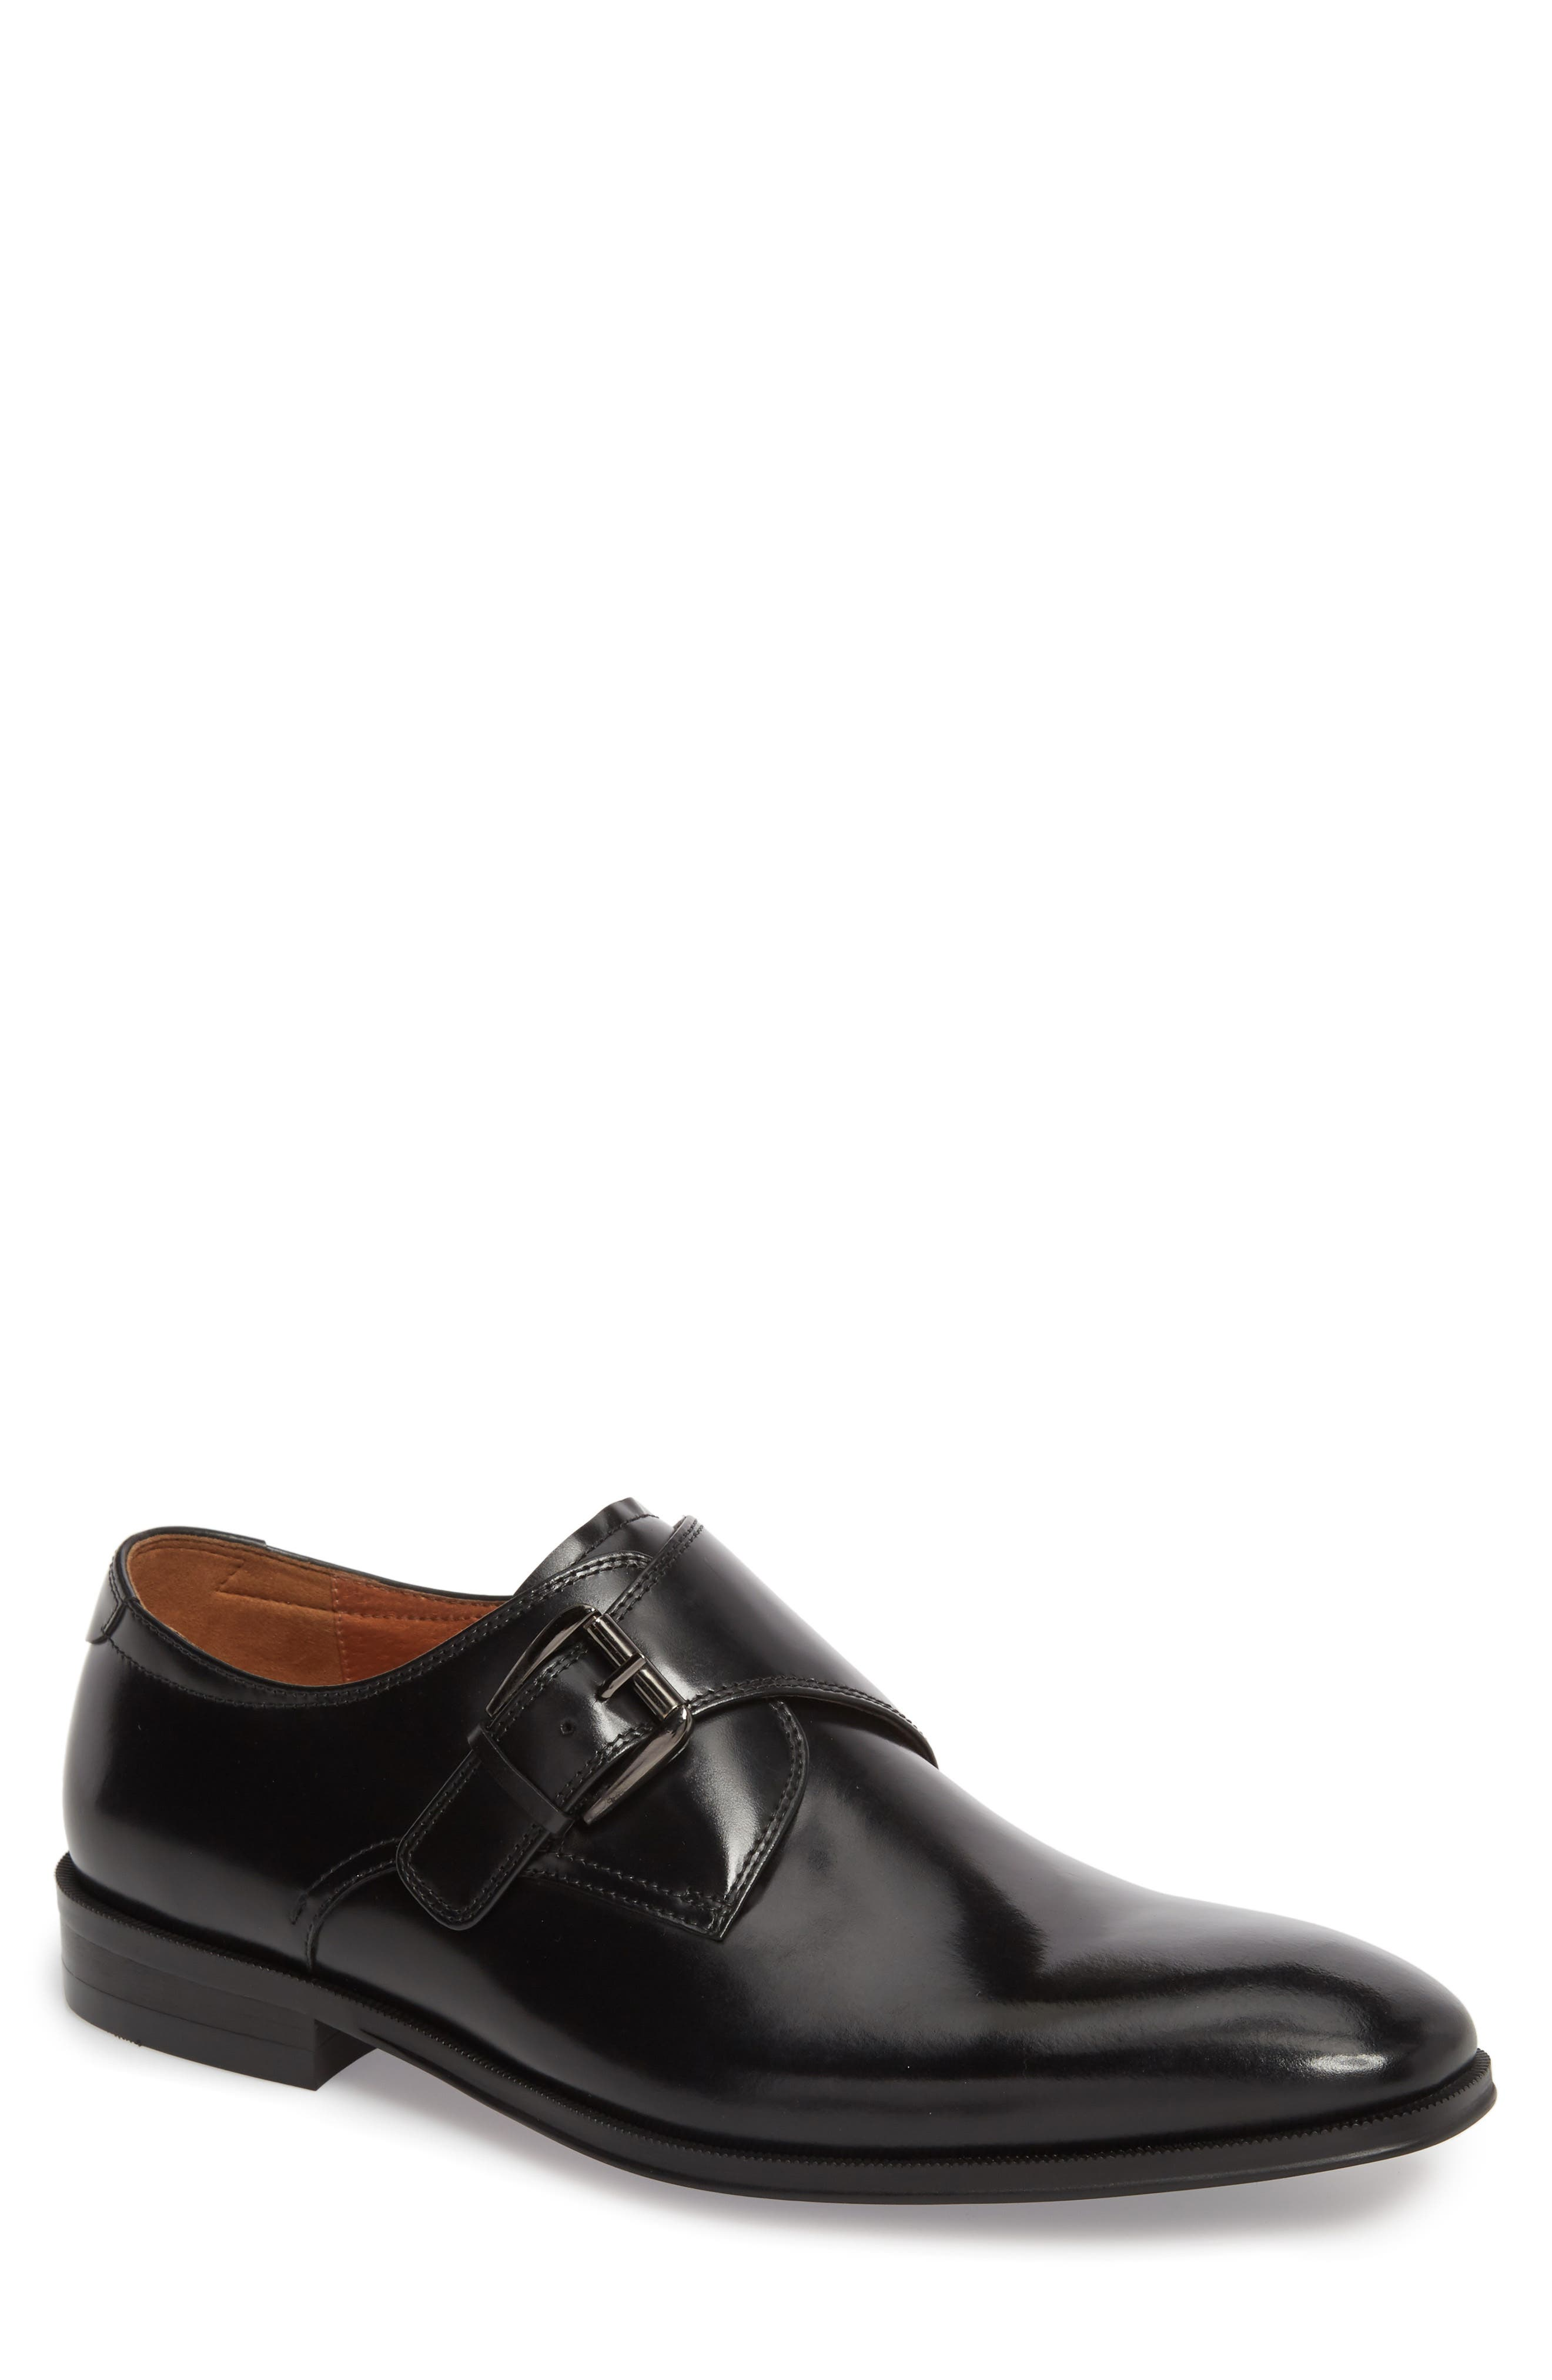 Belfast Single Strap Monk Shoe,                         Main,                         color, BLACK LEATHER